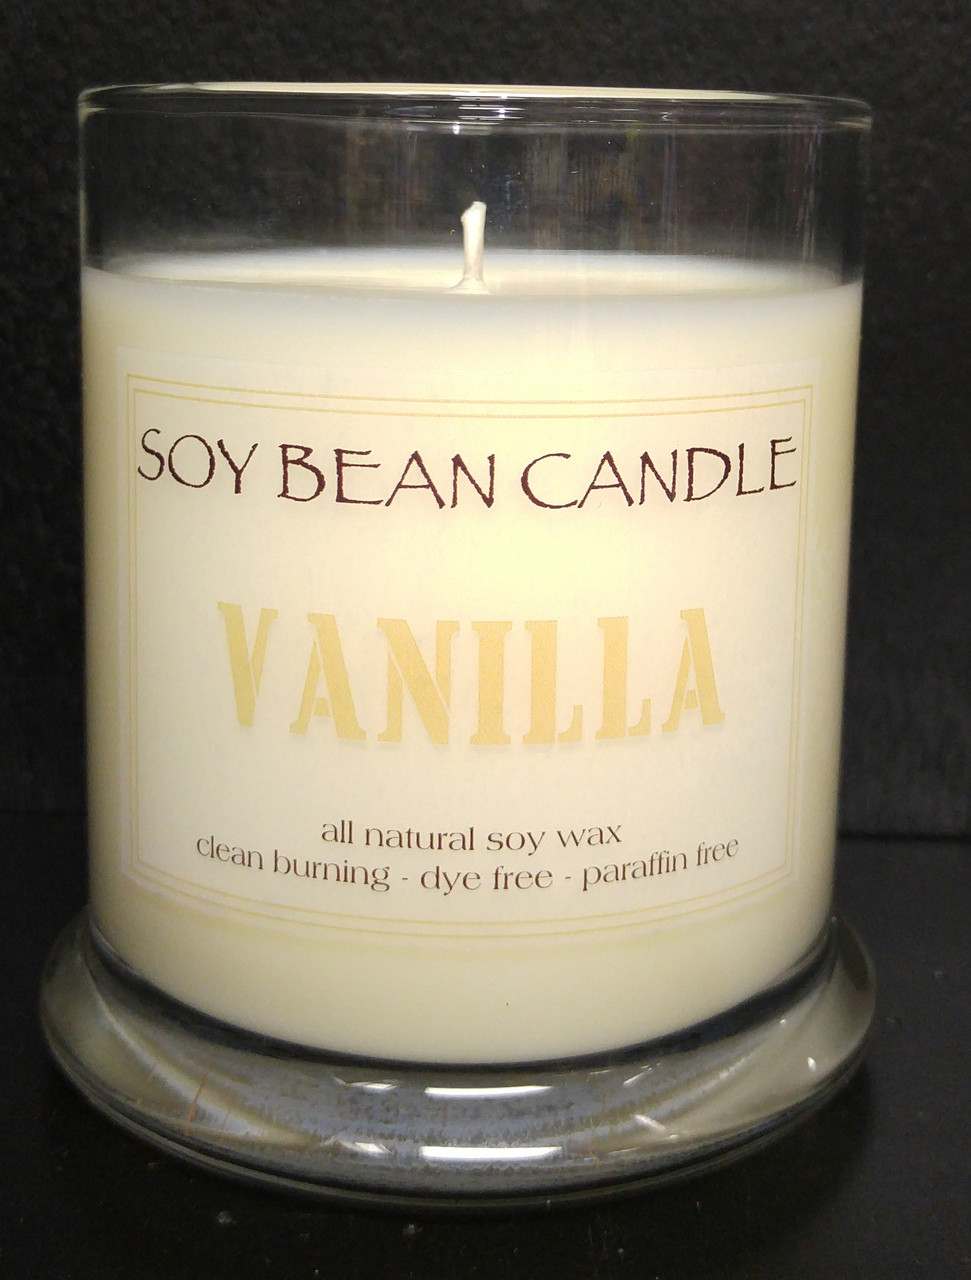 Vanilla Bean Soy Candle Soyfire Natural Wax Scented Candles Cinnamon With Its Intense Aroma And Subtle Touch Of Cream Continues To Be One